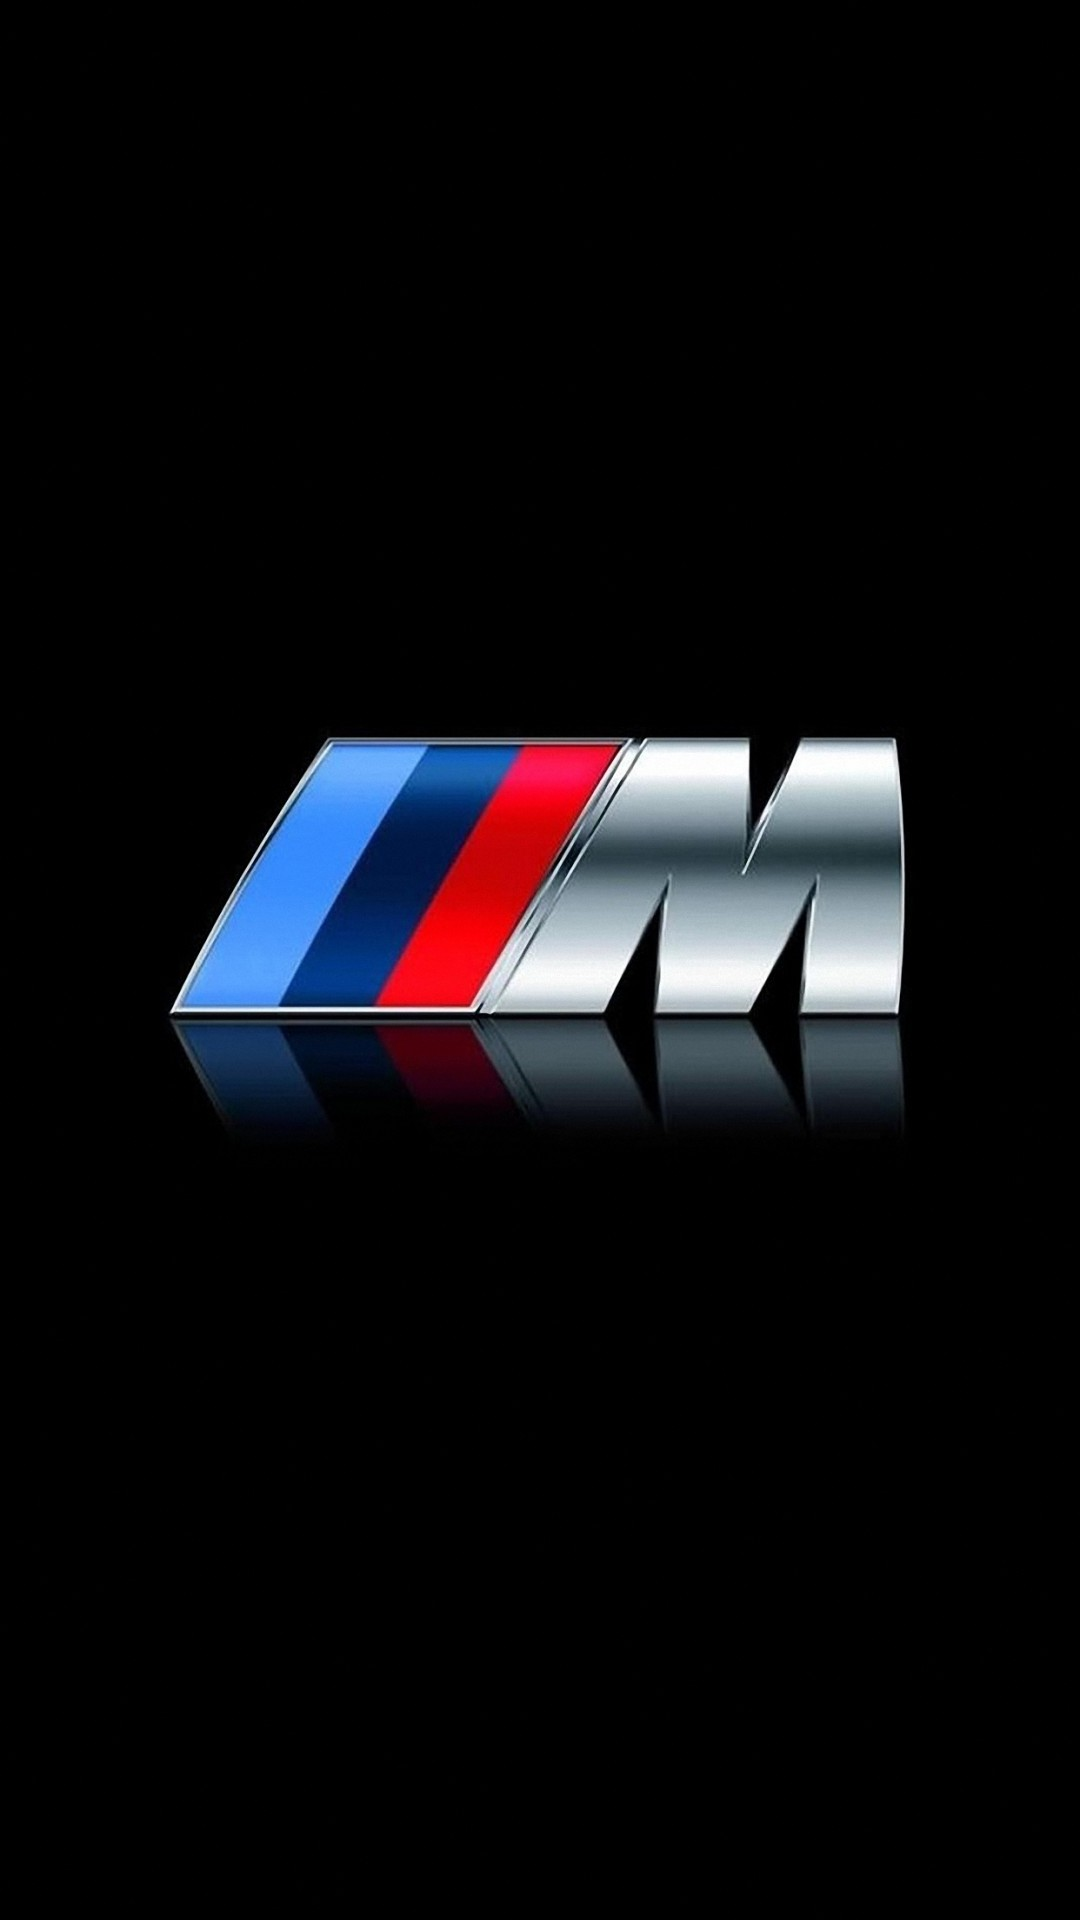 Bmw Logo Hd Wallpaper 70 Images